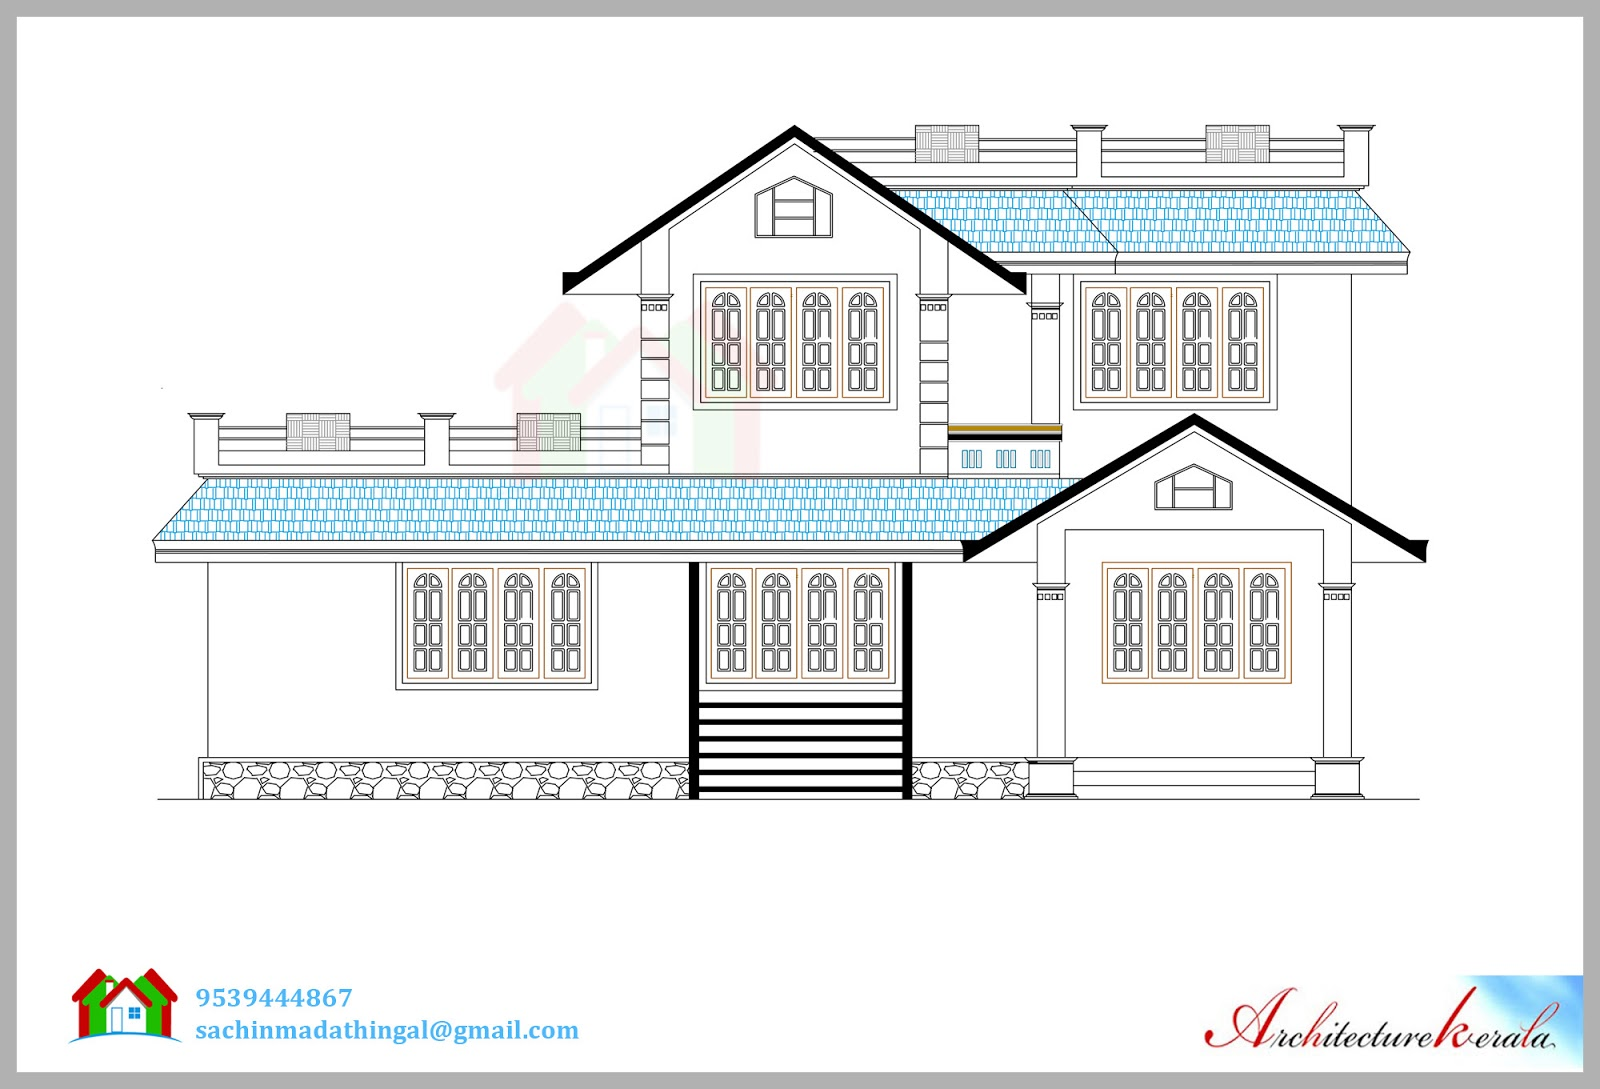 House Plan Elevation Drawings : Architecture kerala beautiful house elevation with its